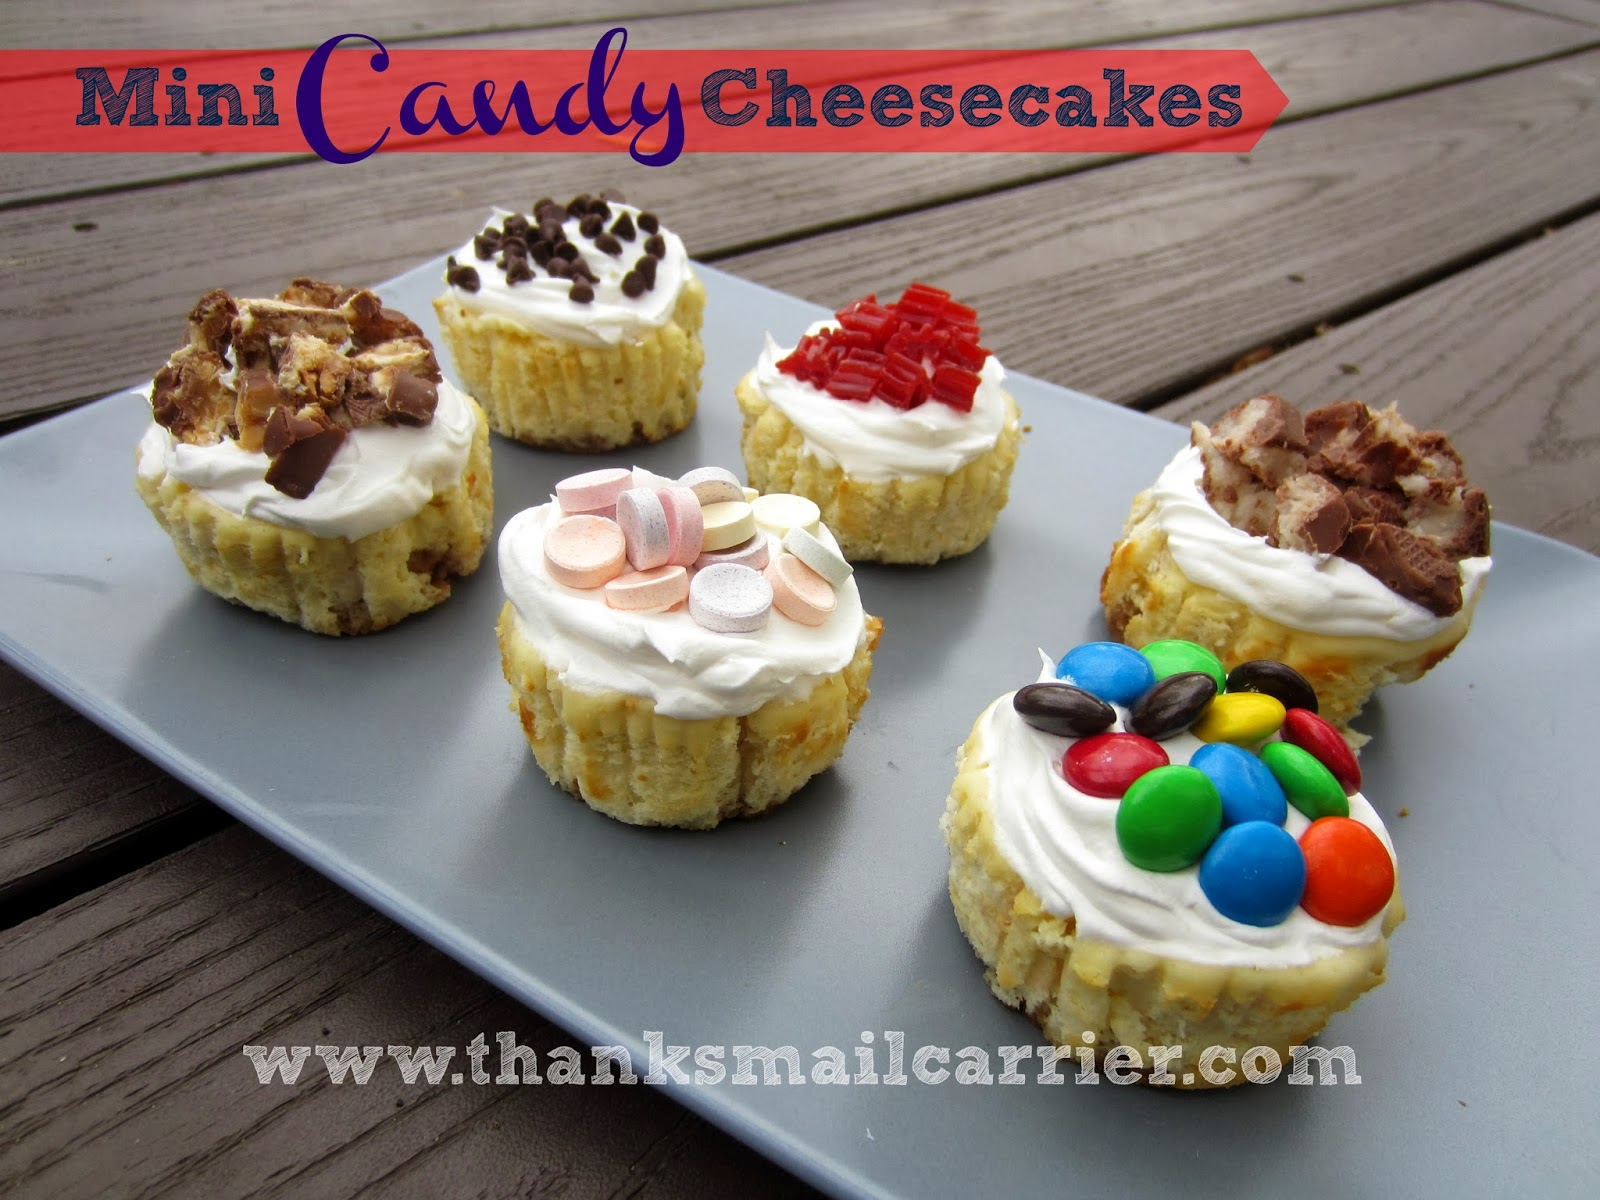 Mini Candy Cheesecakes